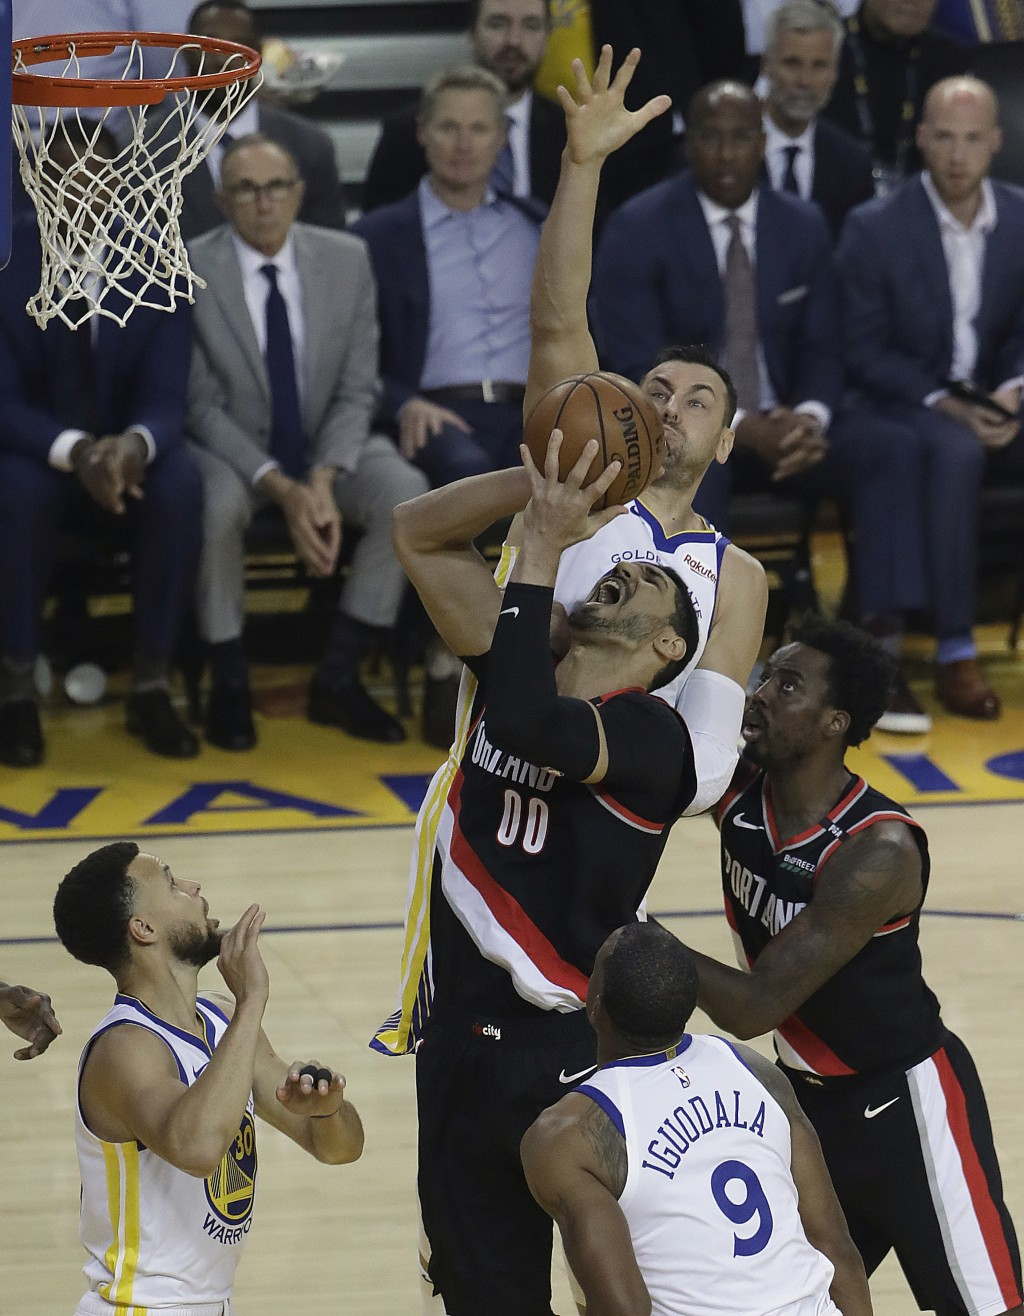 Portland Trail Blazers' Enes Kanter (00) shoots between Golden State Warriors' Andre Iguodala (9) and Stephen Curry, left, during the first half of Ga...